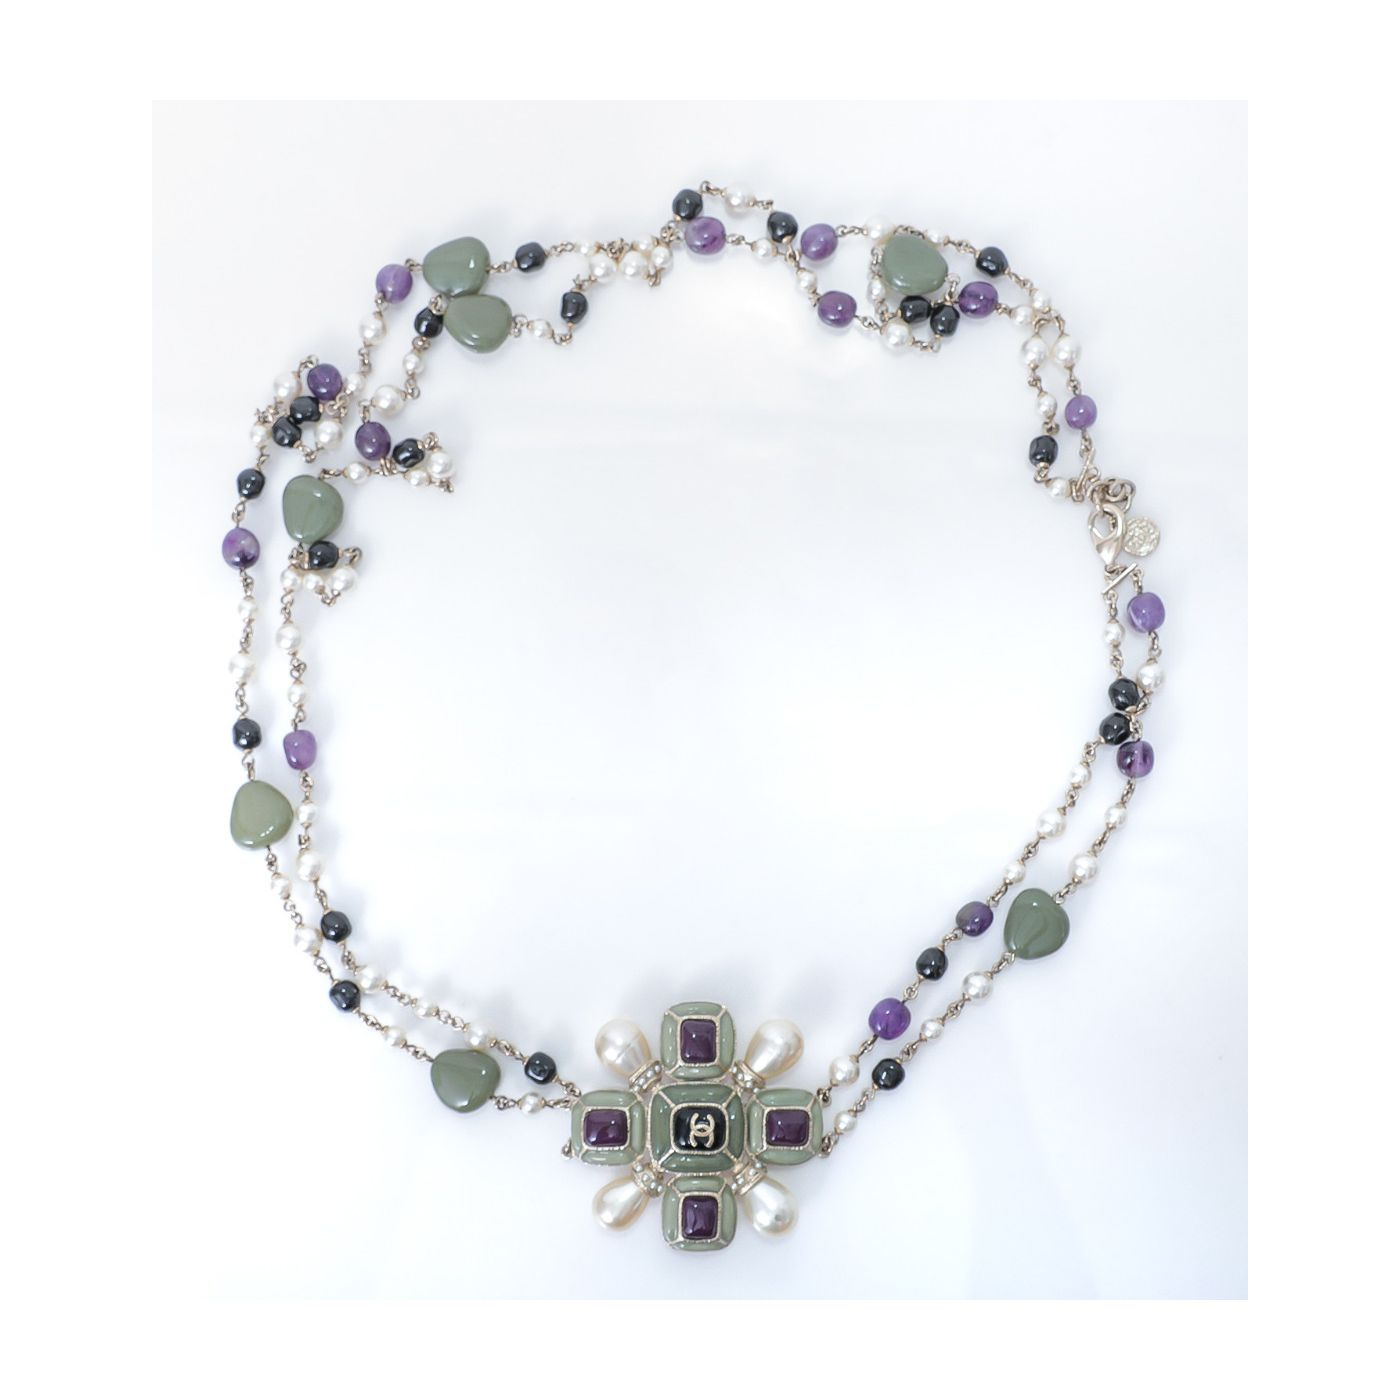 Chanel 100 Anniversary Multicolor Stones Pearls Necklace